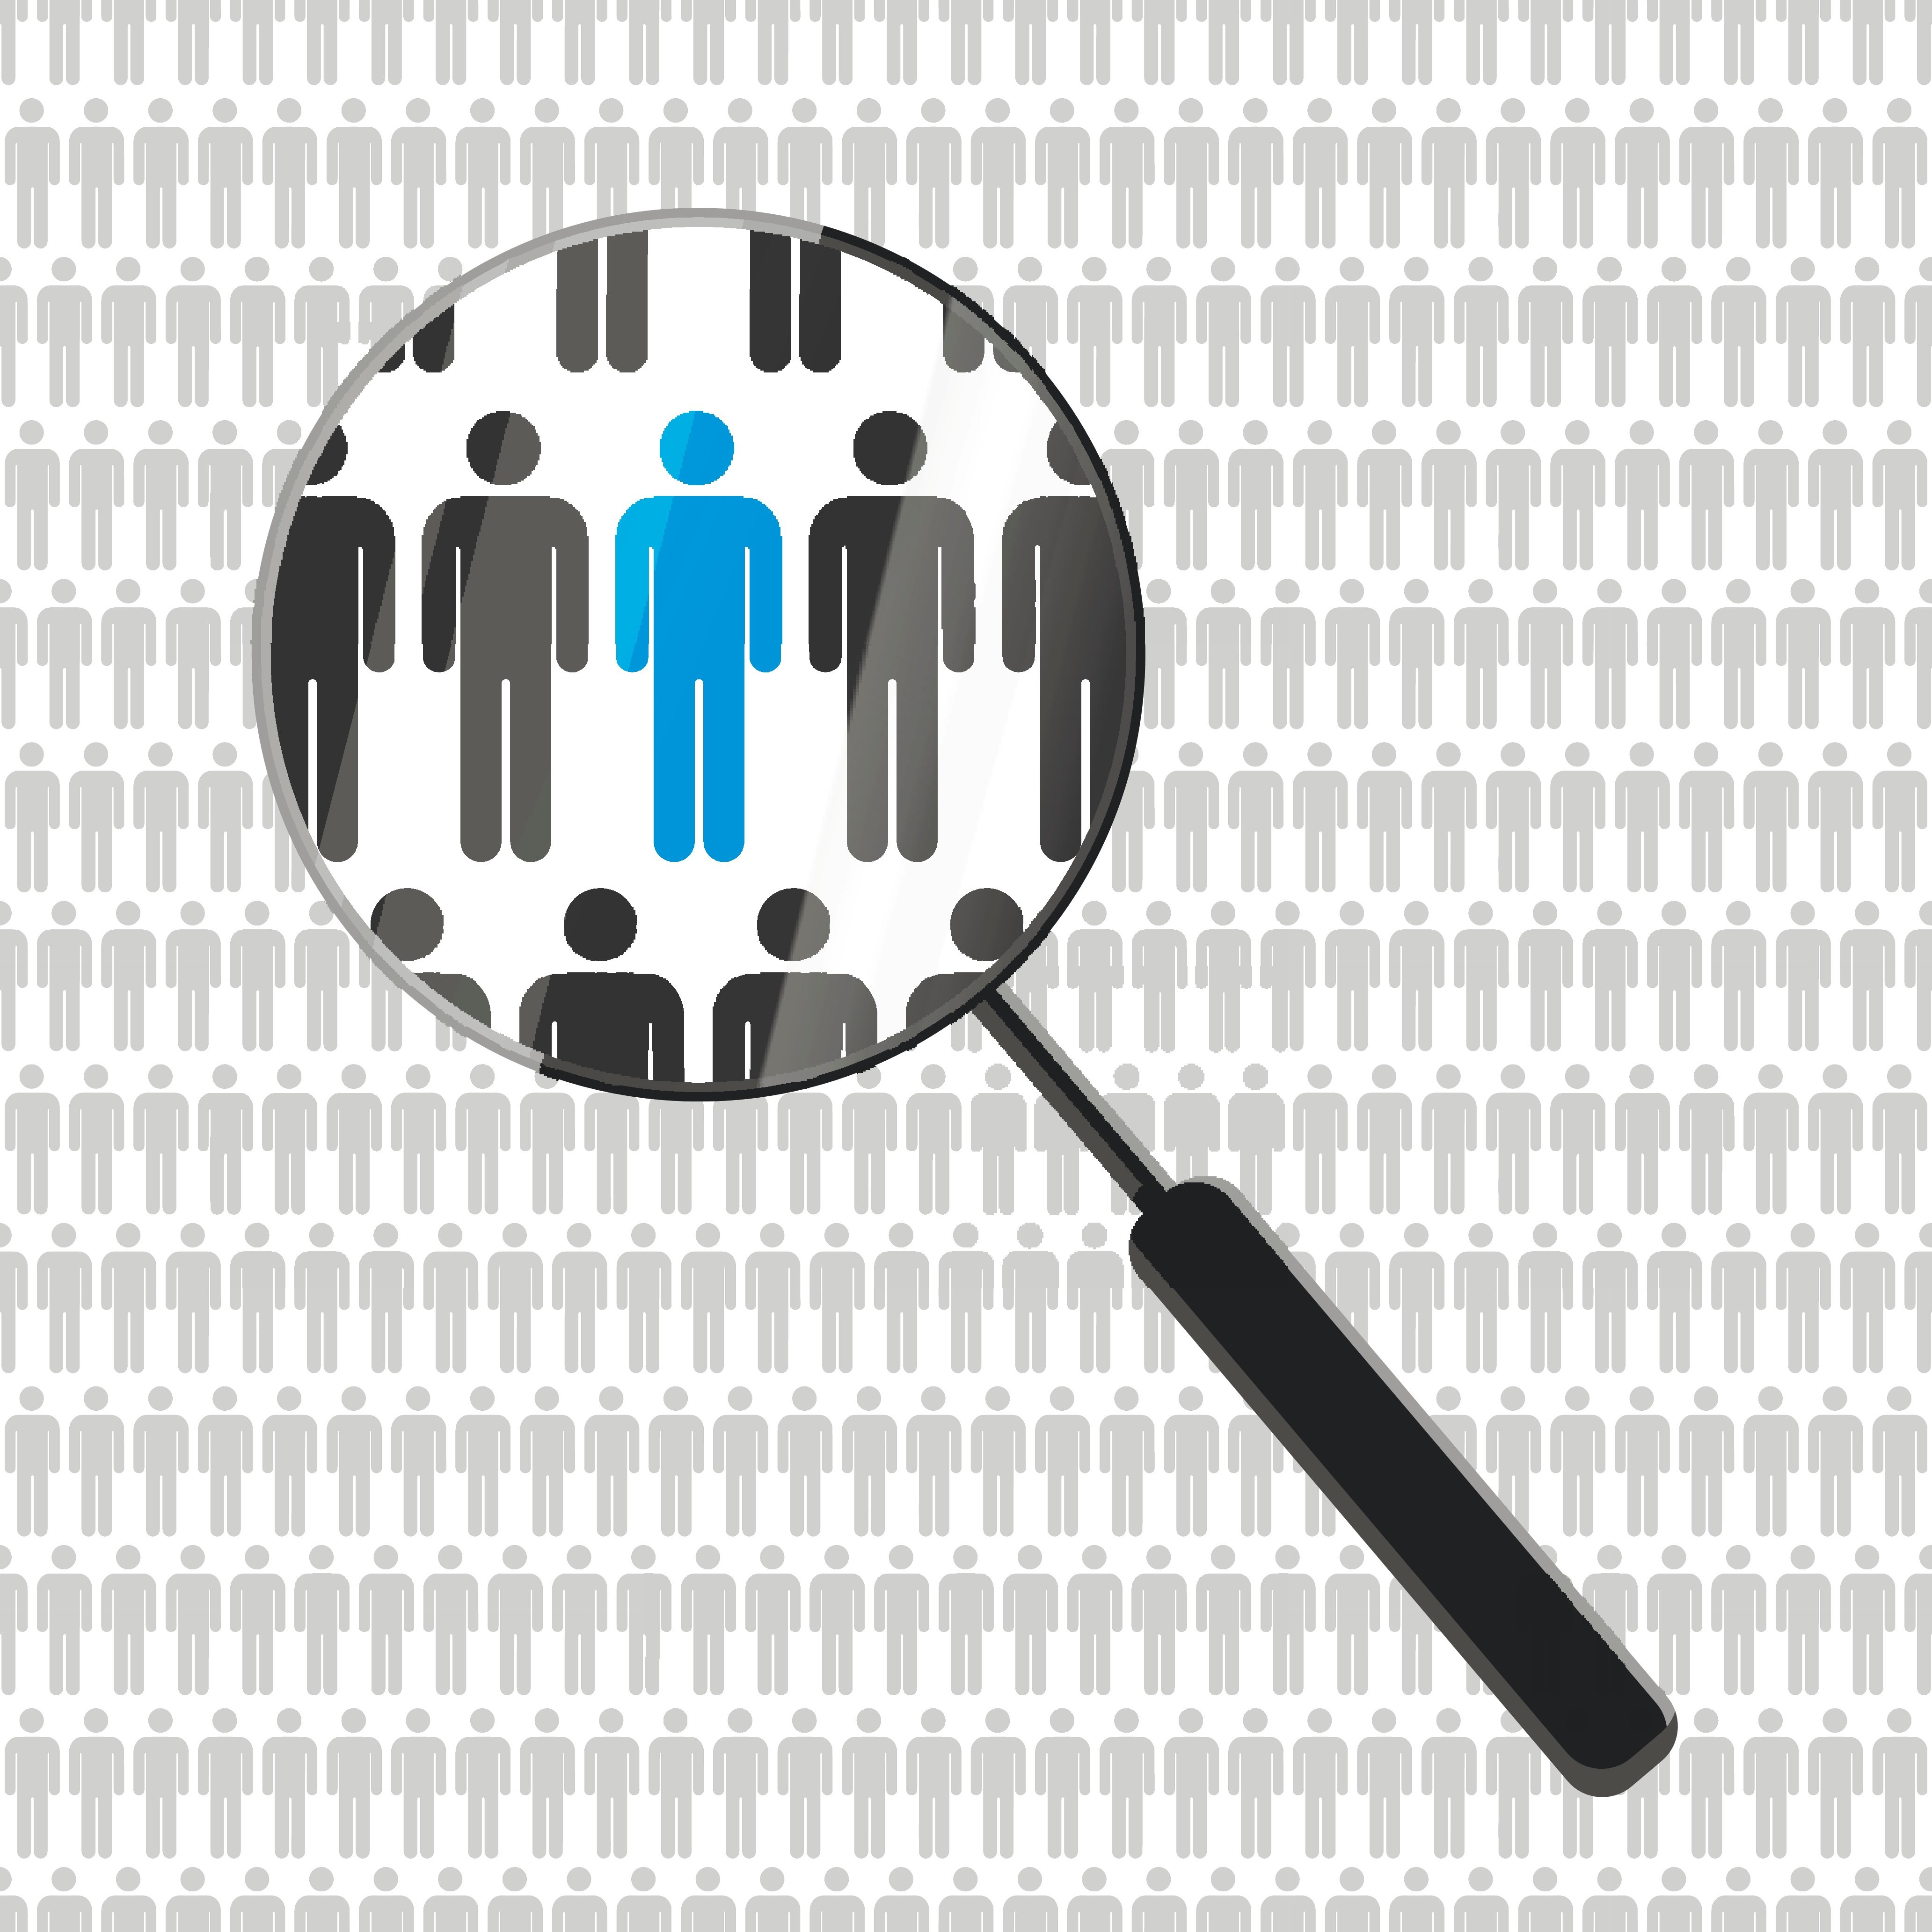 HR-looking-for-a-employee-with-magnifying-glass-514407760_4129x4129 (2).jpeg